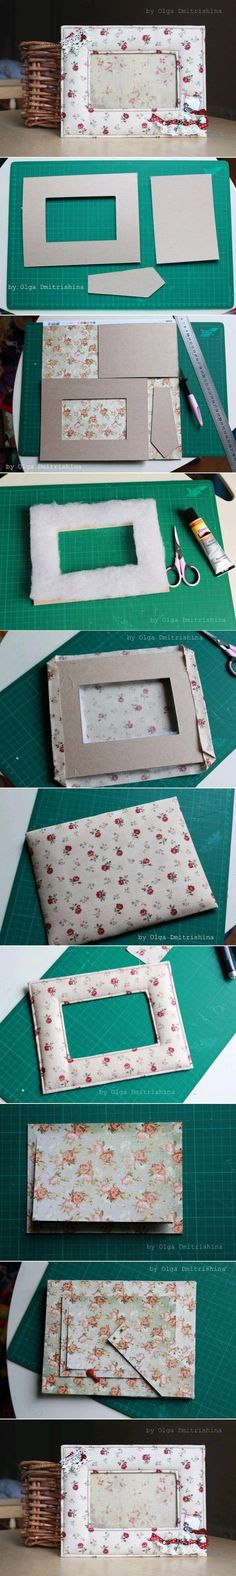 DIY Soft Picture Frame DIY Soft Picture Frame